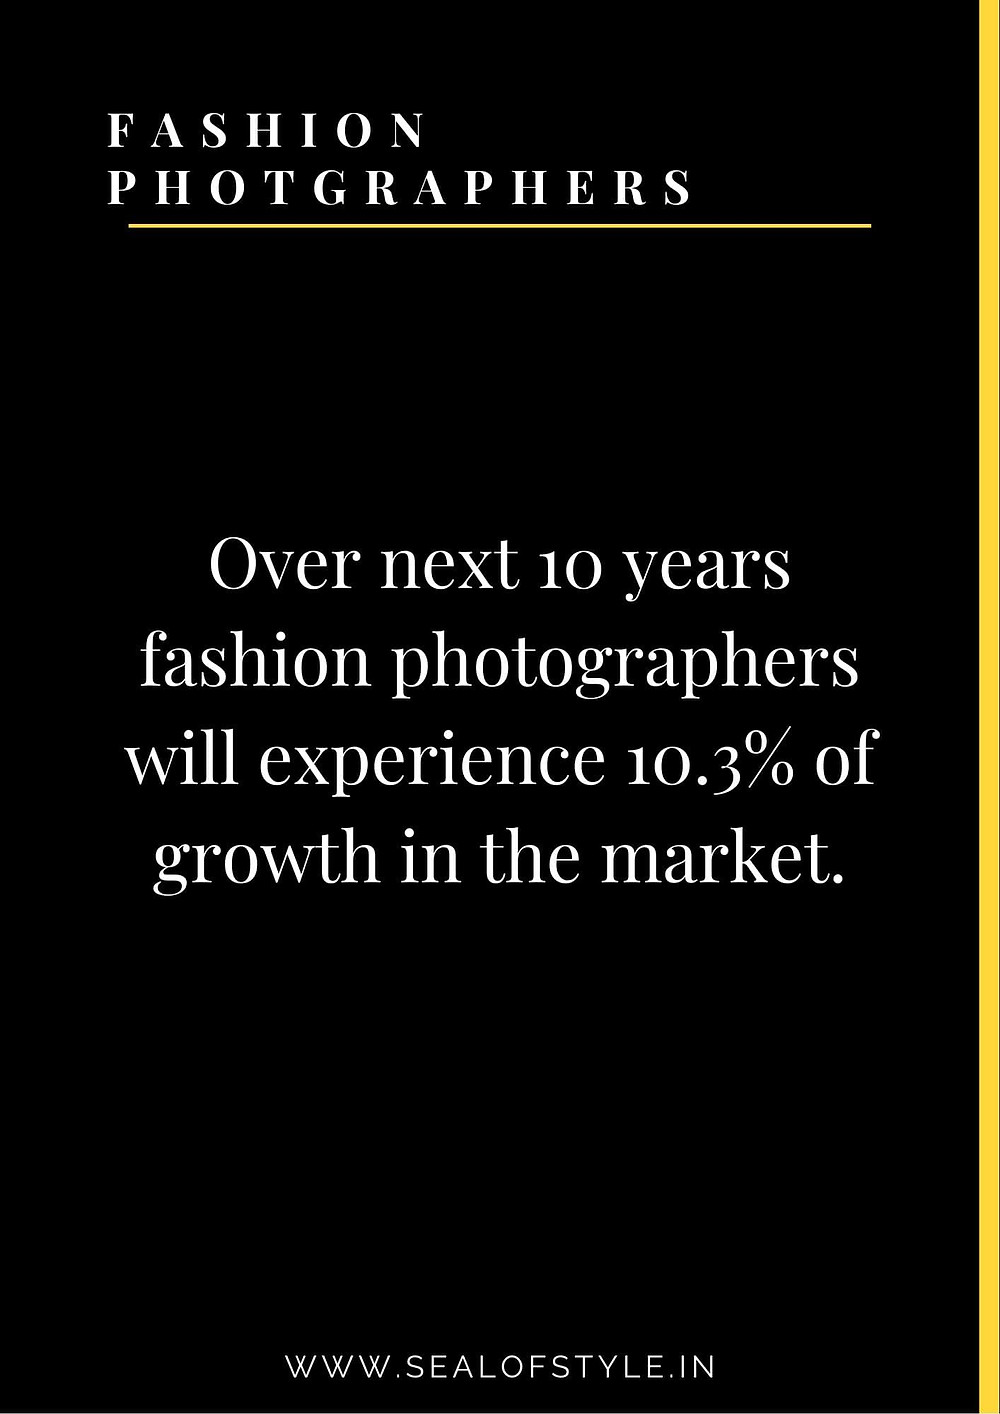 Information about fashion photographer